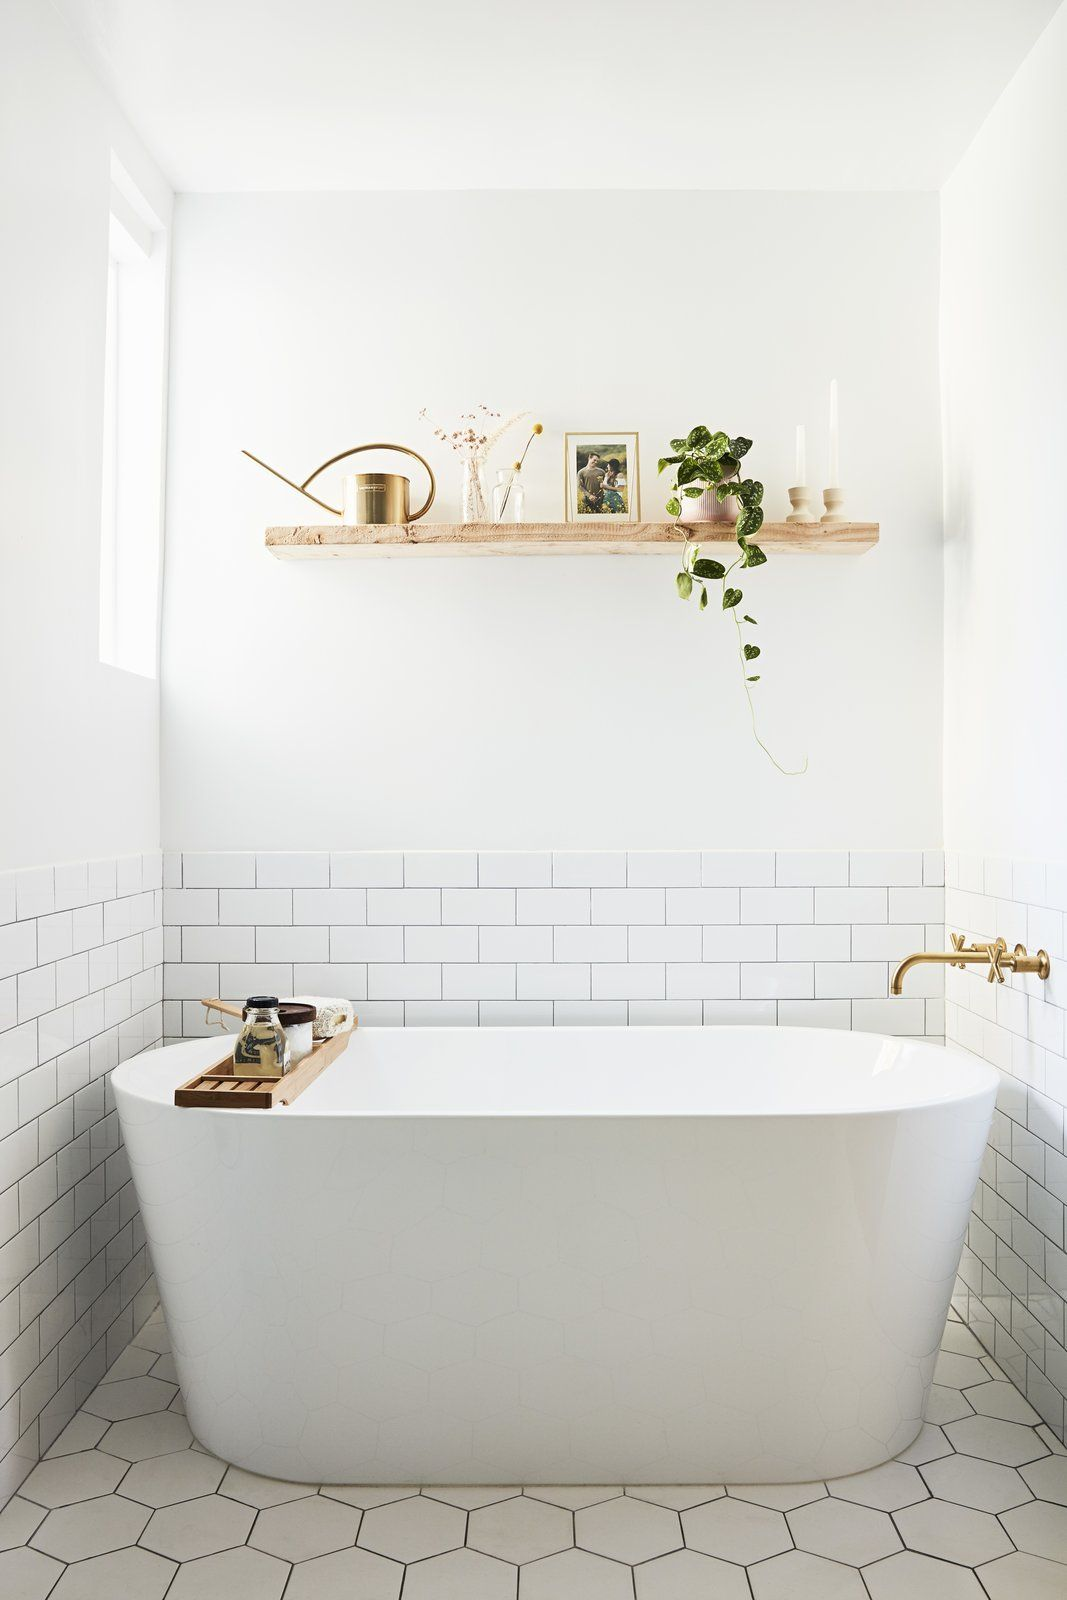 Beauty Vlogger Kristin Johns Showcases Her Glistening Bathroom in Los Angeles